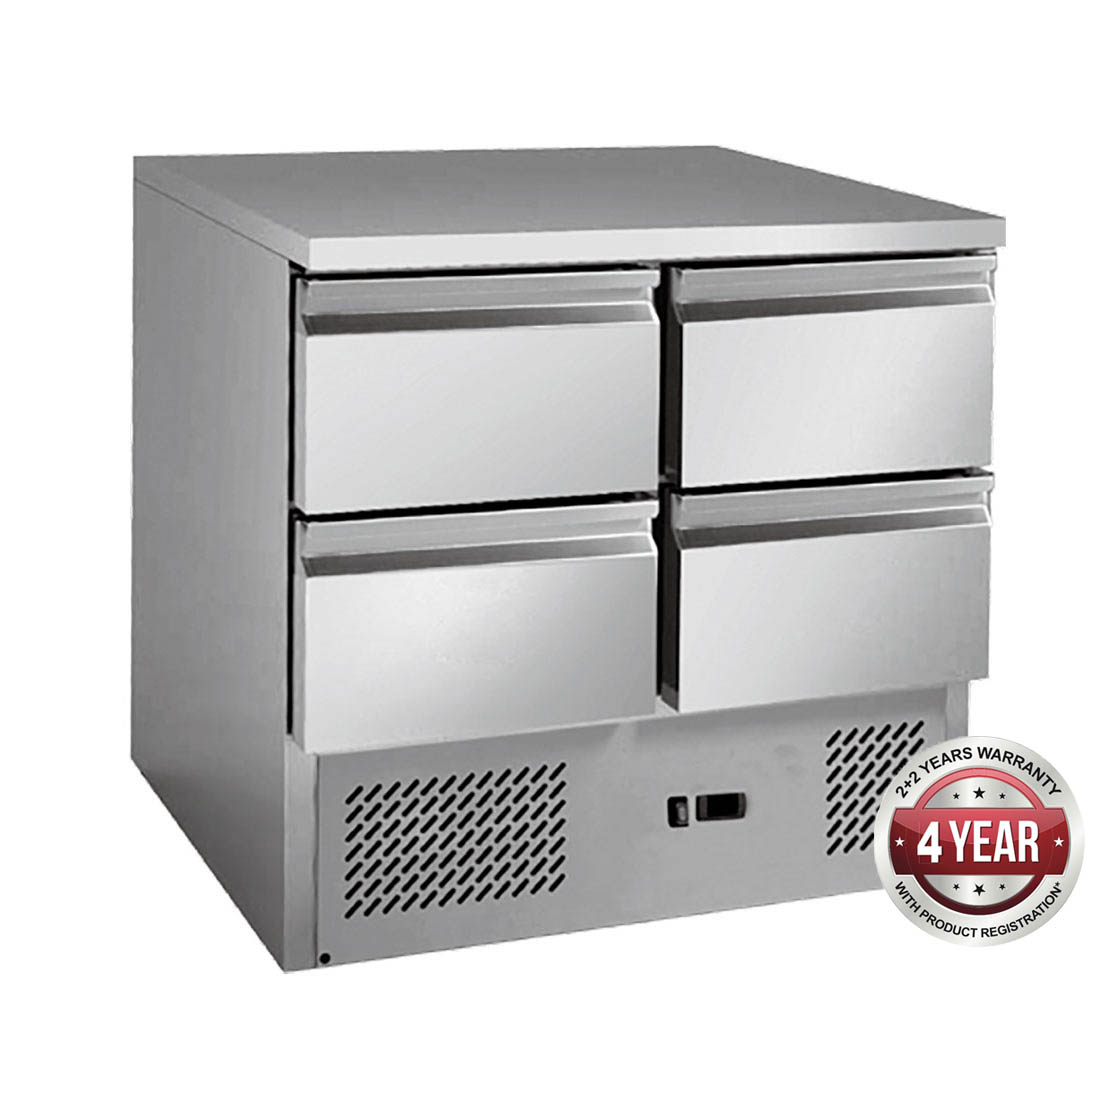 Stainless steel 4 Drawers Benchtop Fridge - GNS900-4D